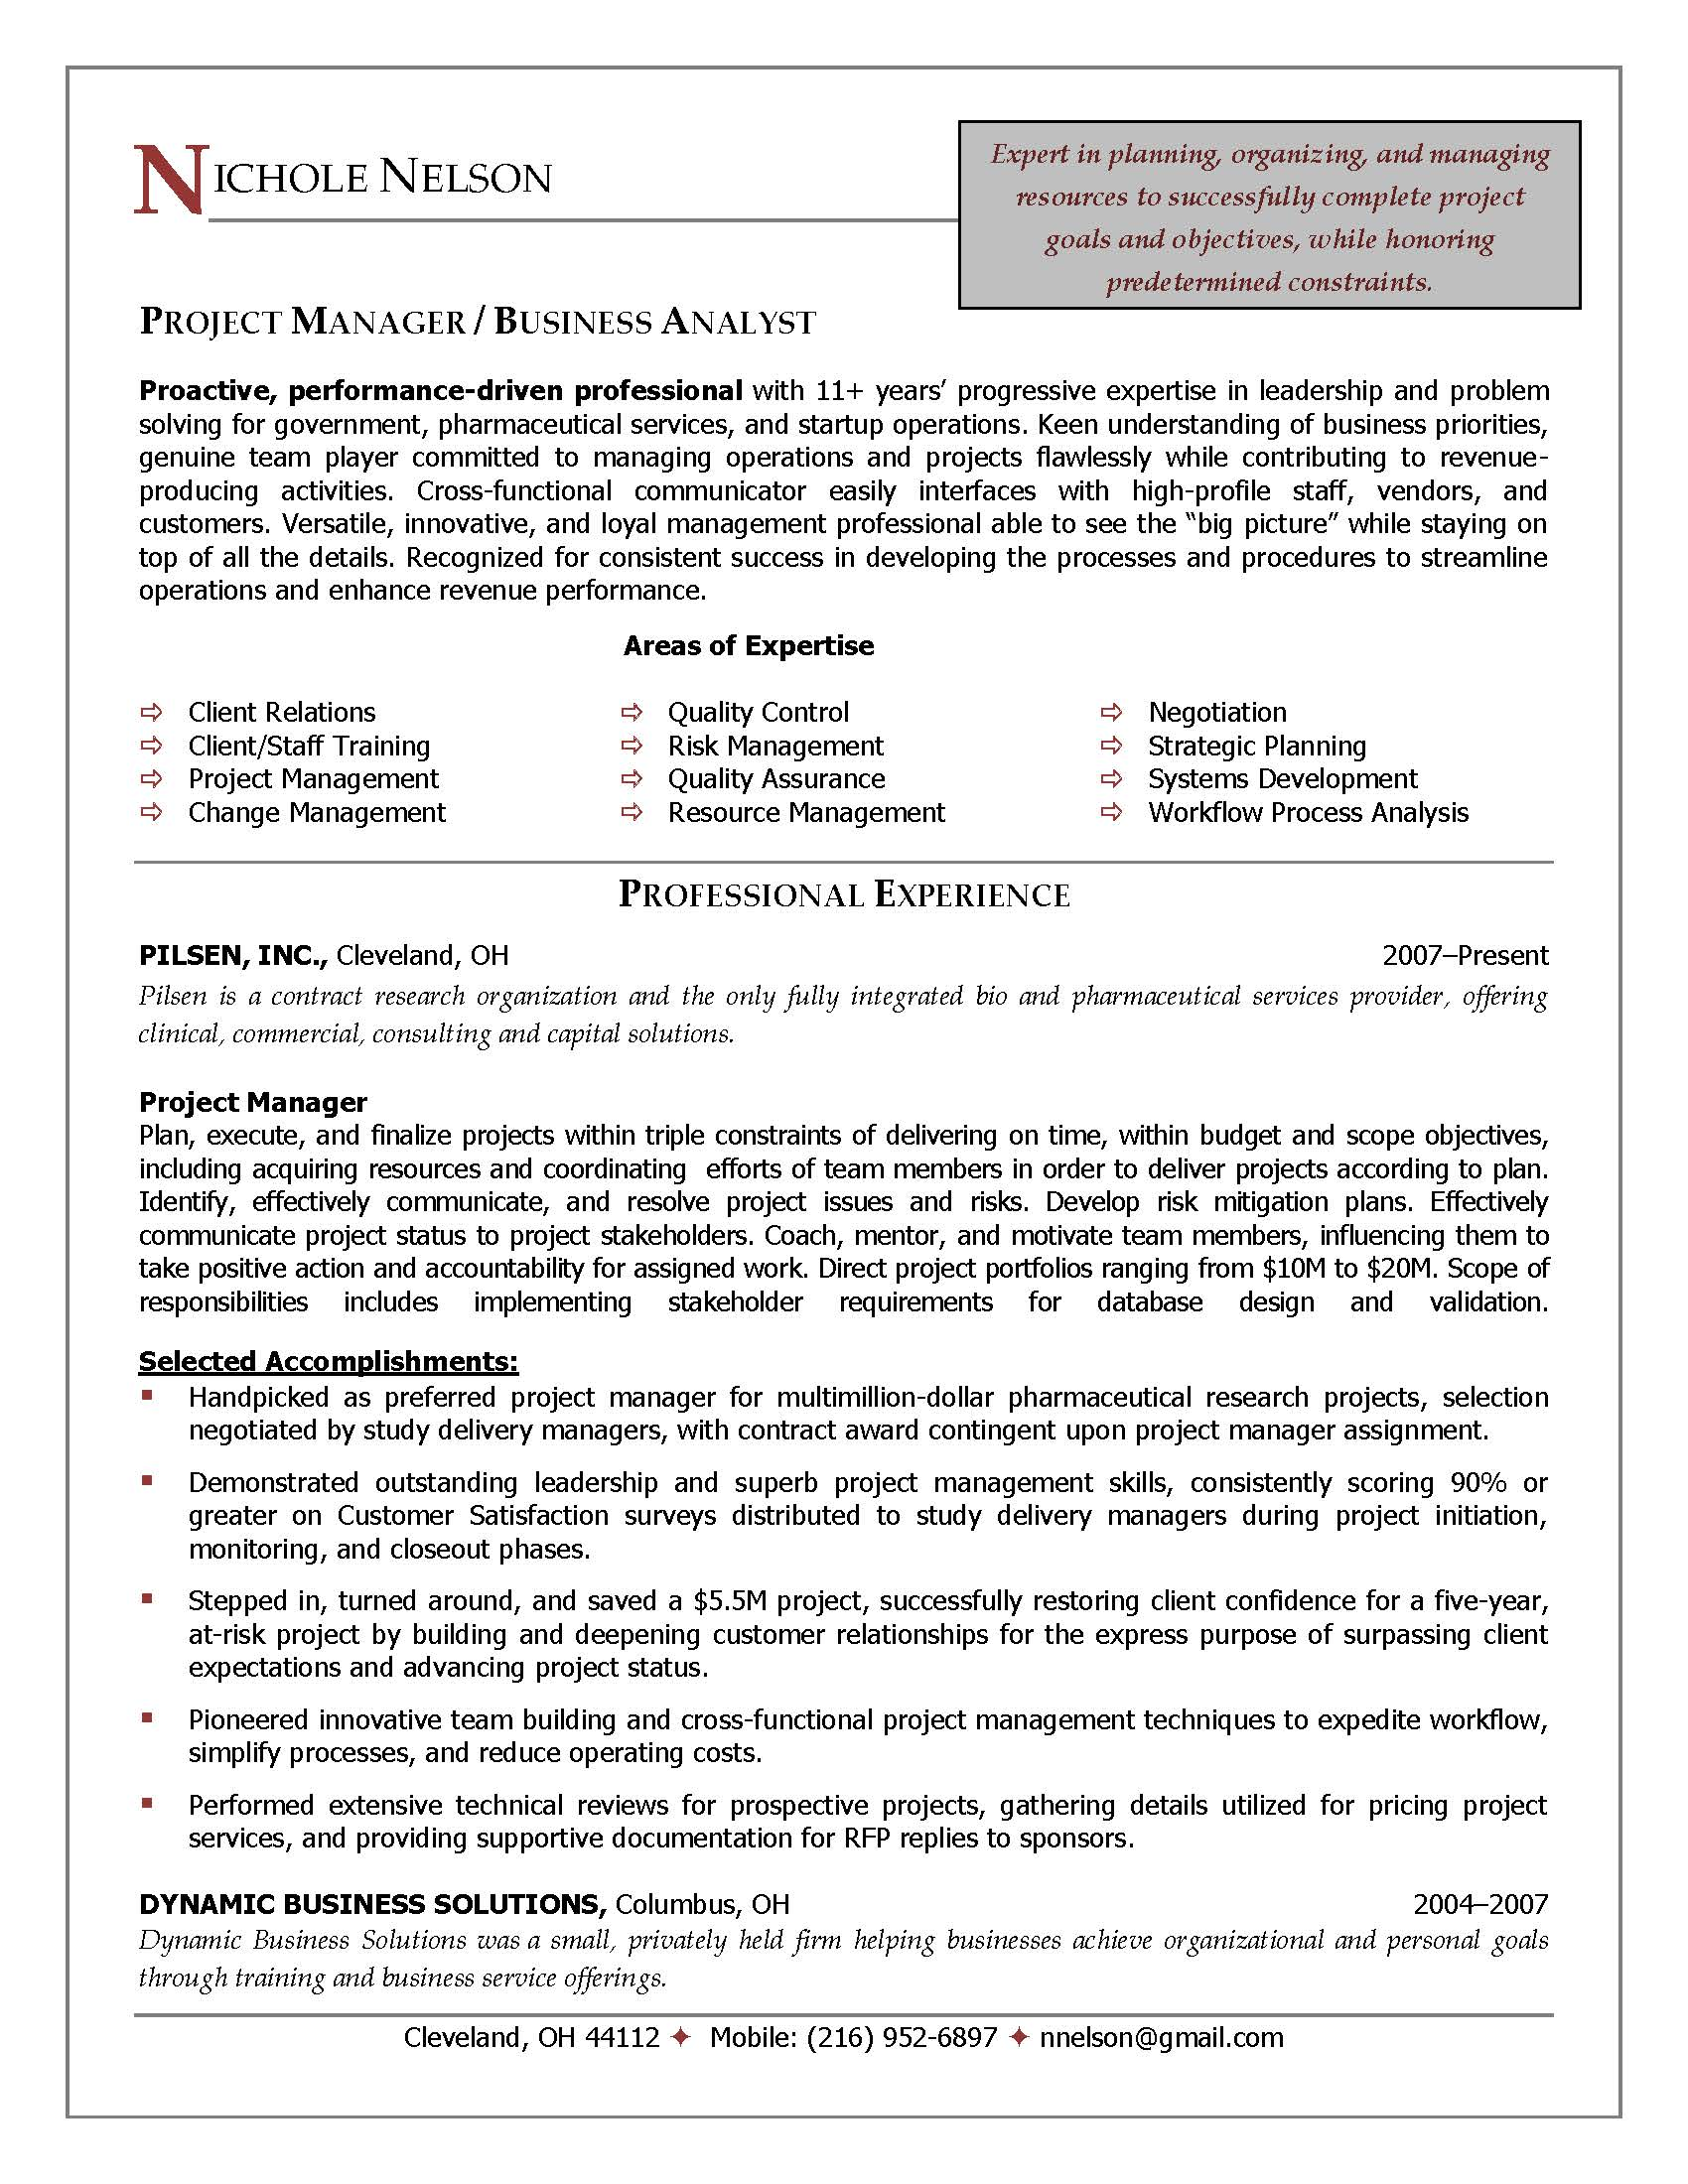 resume samples goals resume samples writing guides for resume samples goals resume objective examples and writing tips the balance project manager resume sample provided